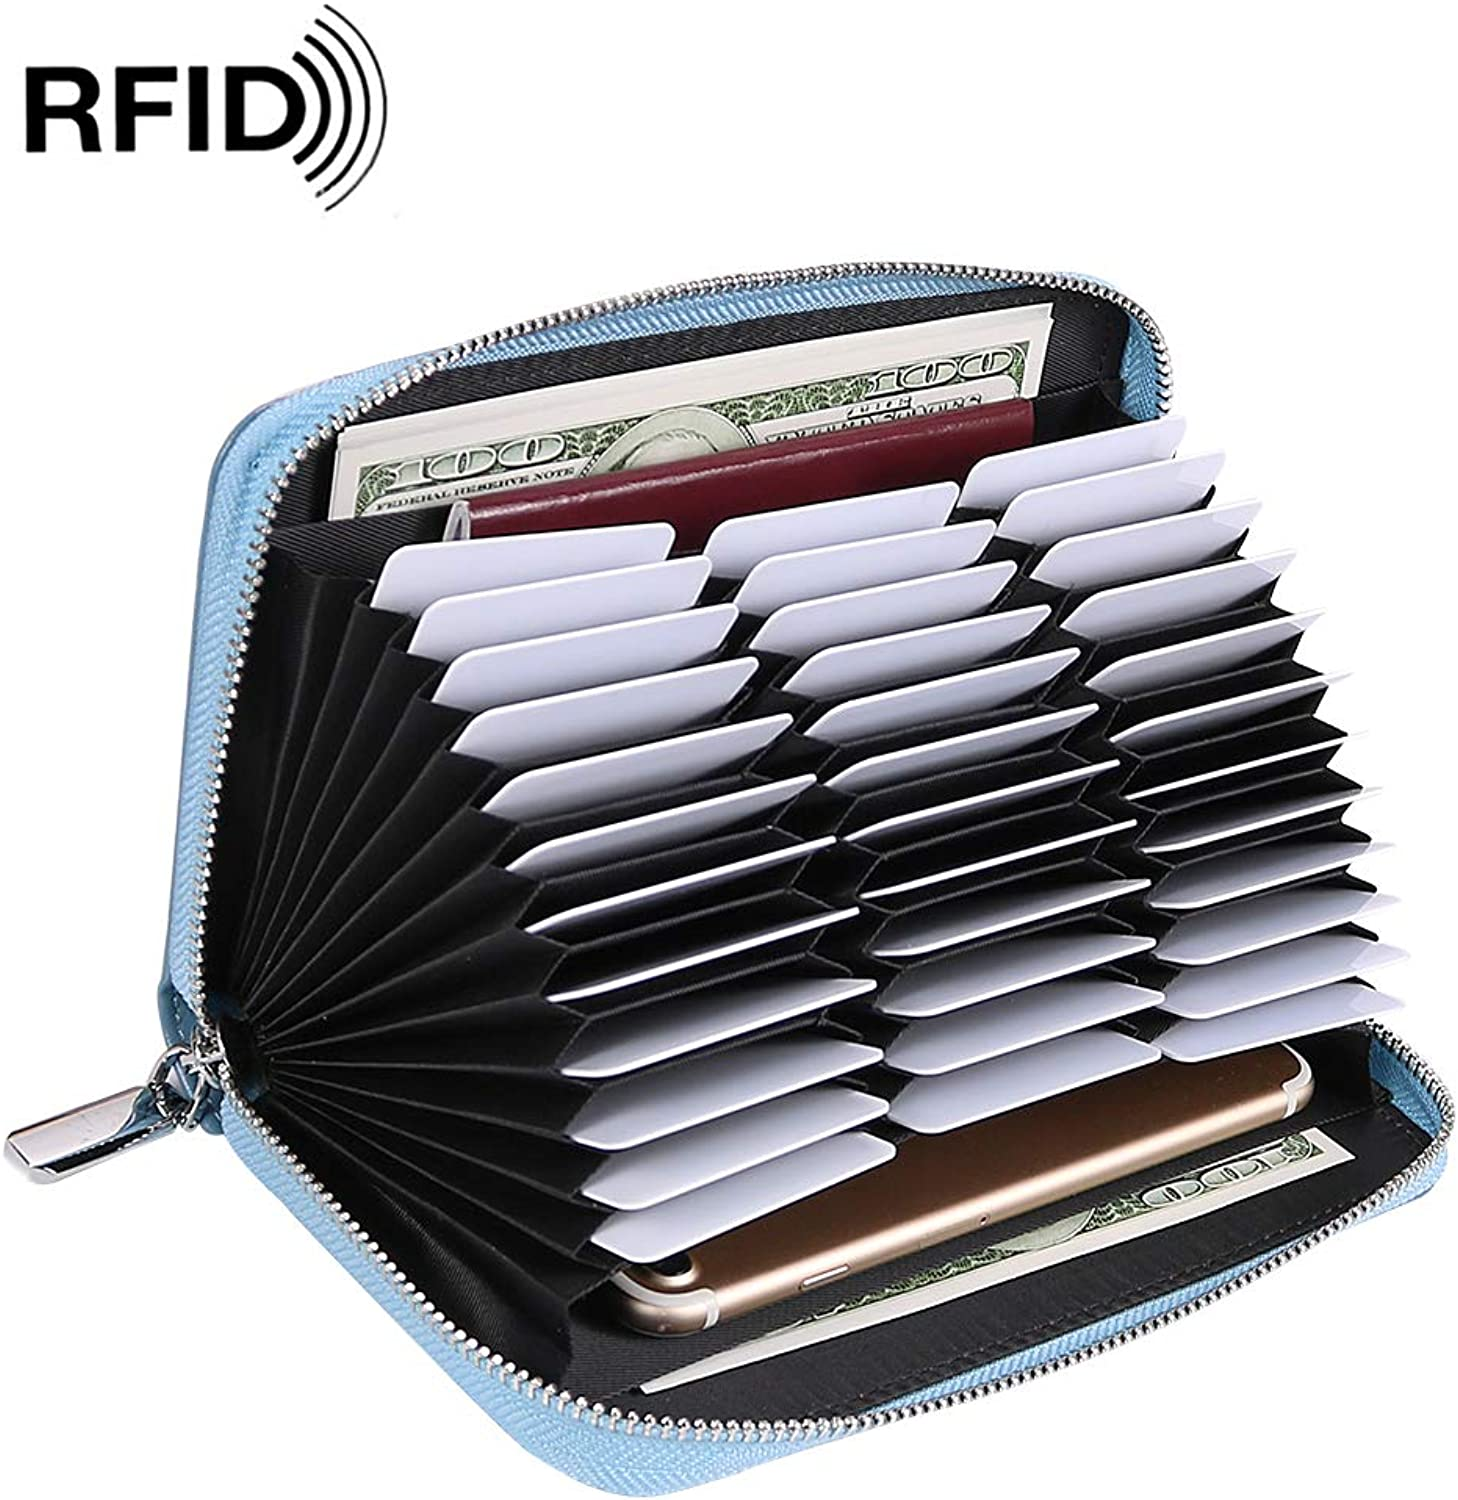 Credit Card Wallet for Women RFID Blocking 36 Slots Credit Card Holder Leather Large Capacity Zipper Purse